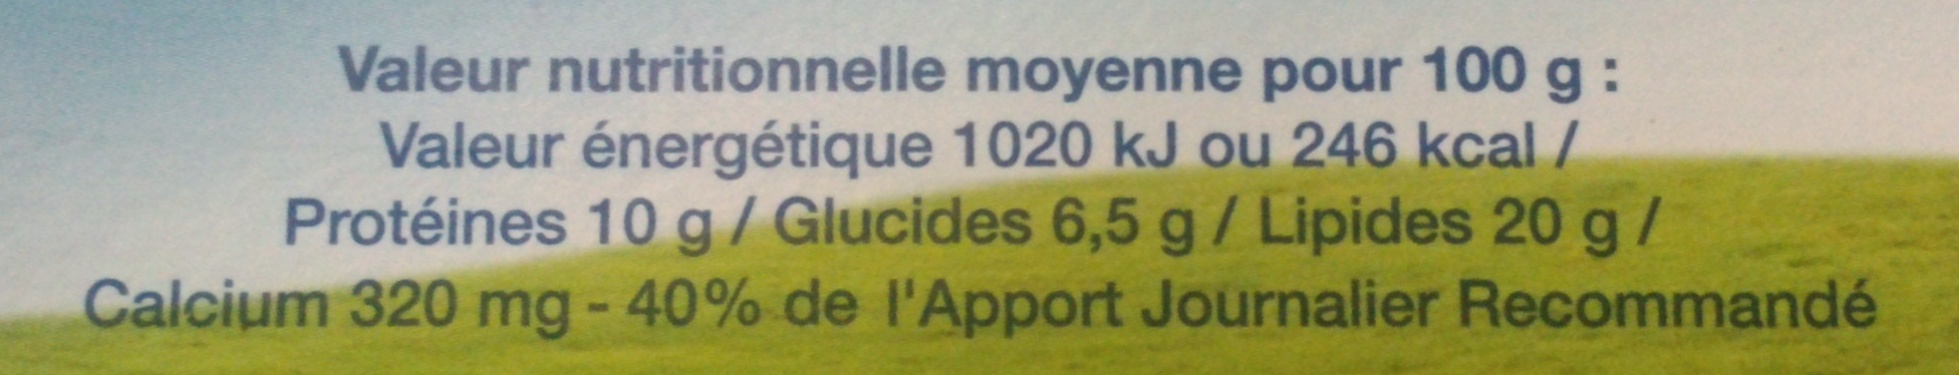 Fromage fondu 8 portions (20 % MG) - Informations nutritionnelles - fr